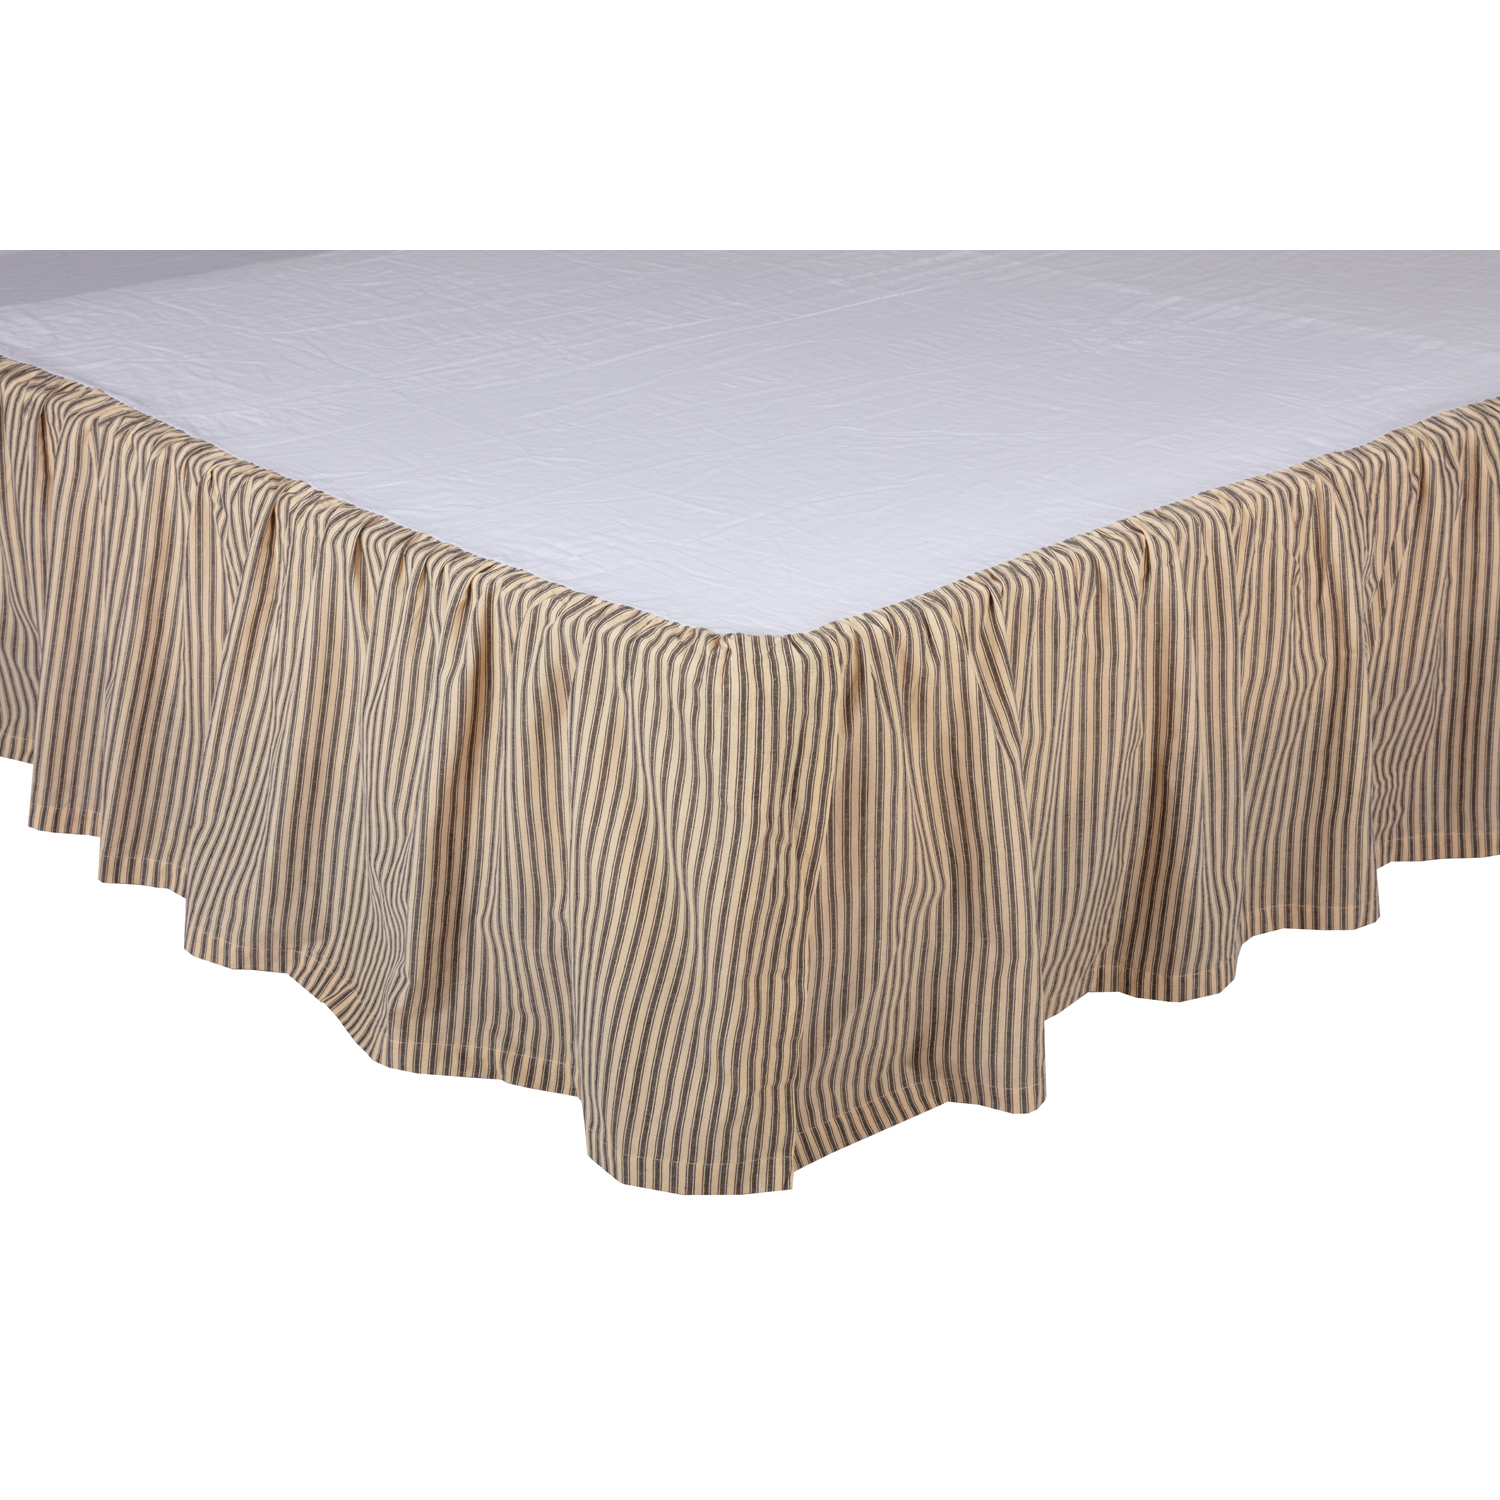 Sawyer Mill Charcoal Ticking Stripe Twin Bed Skirt 39x76x16